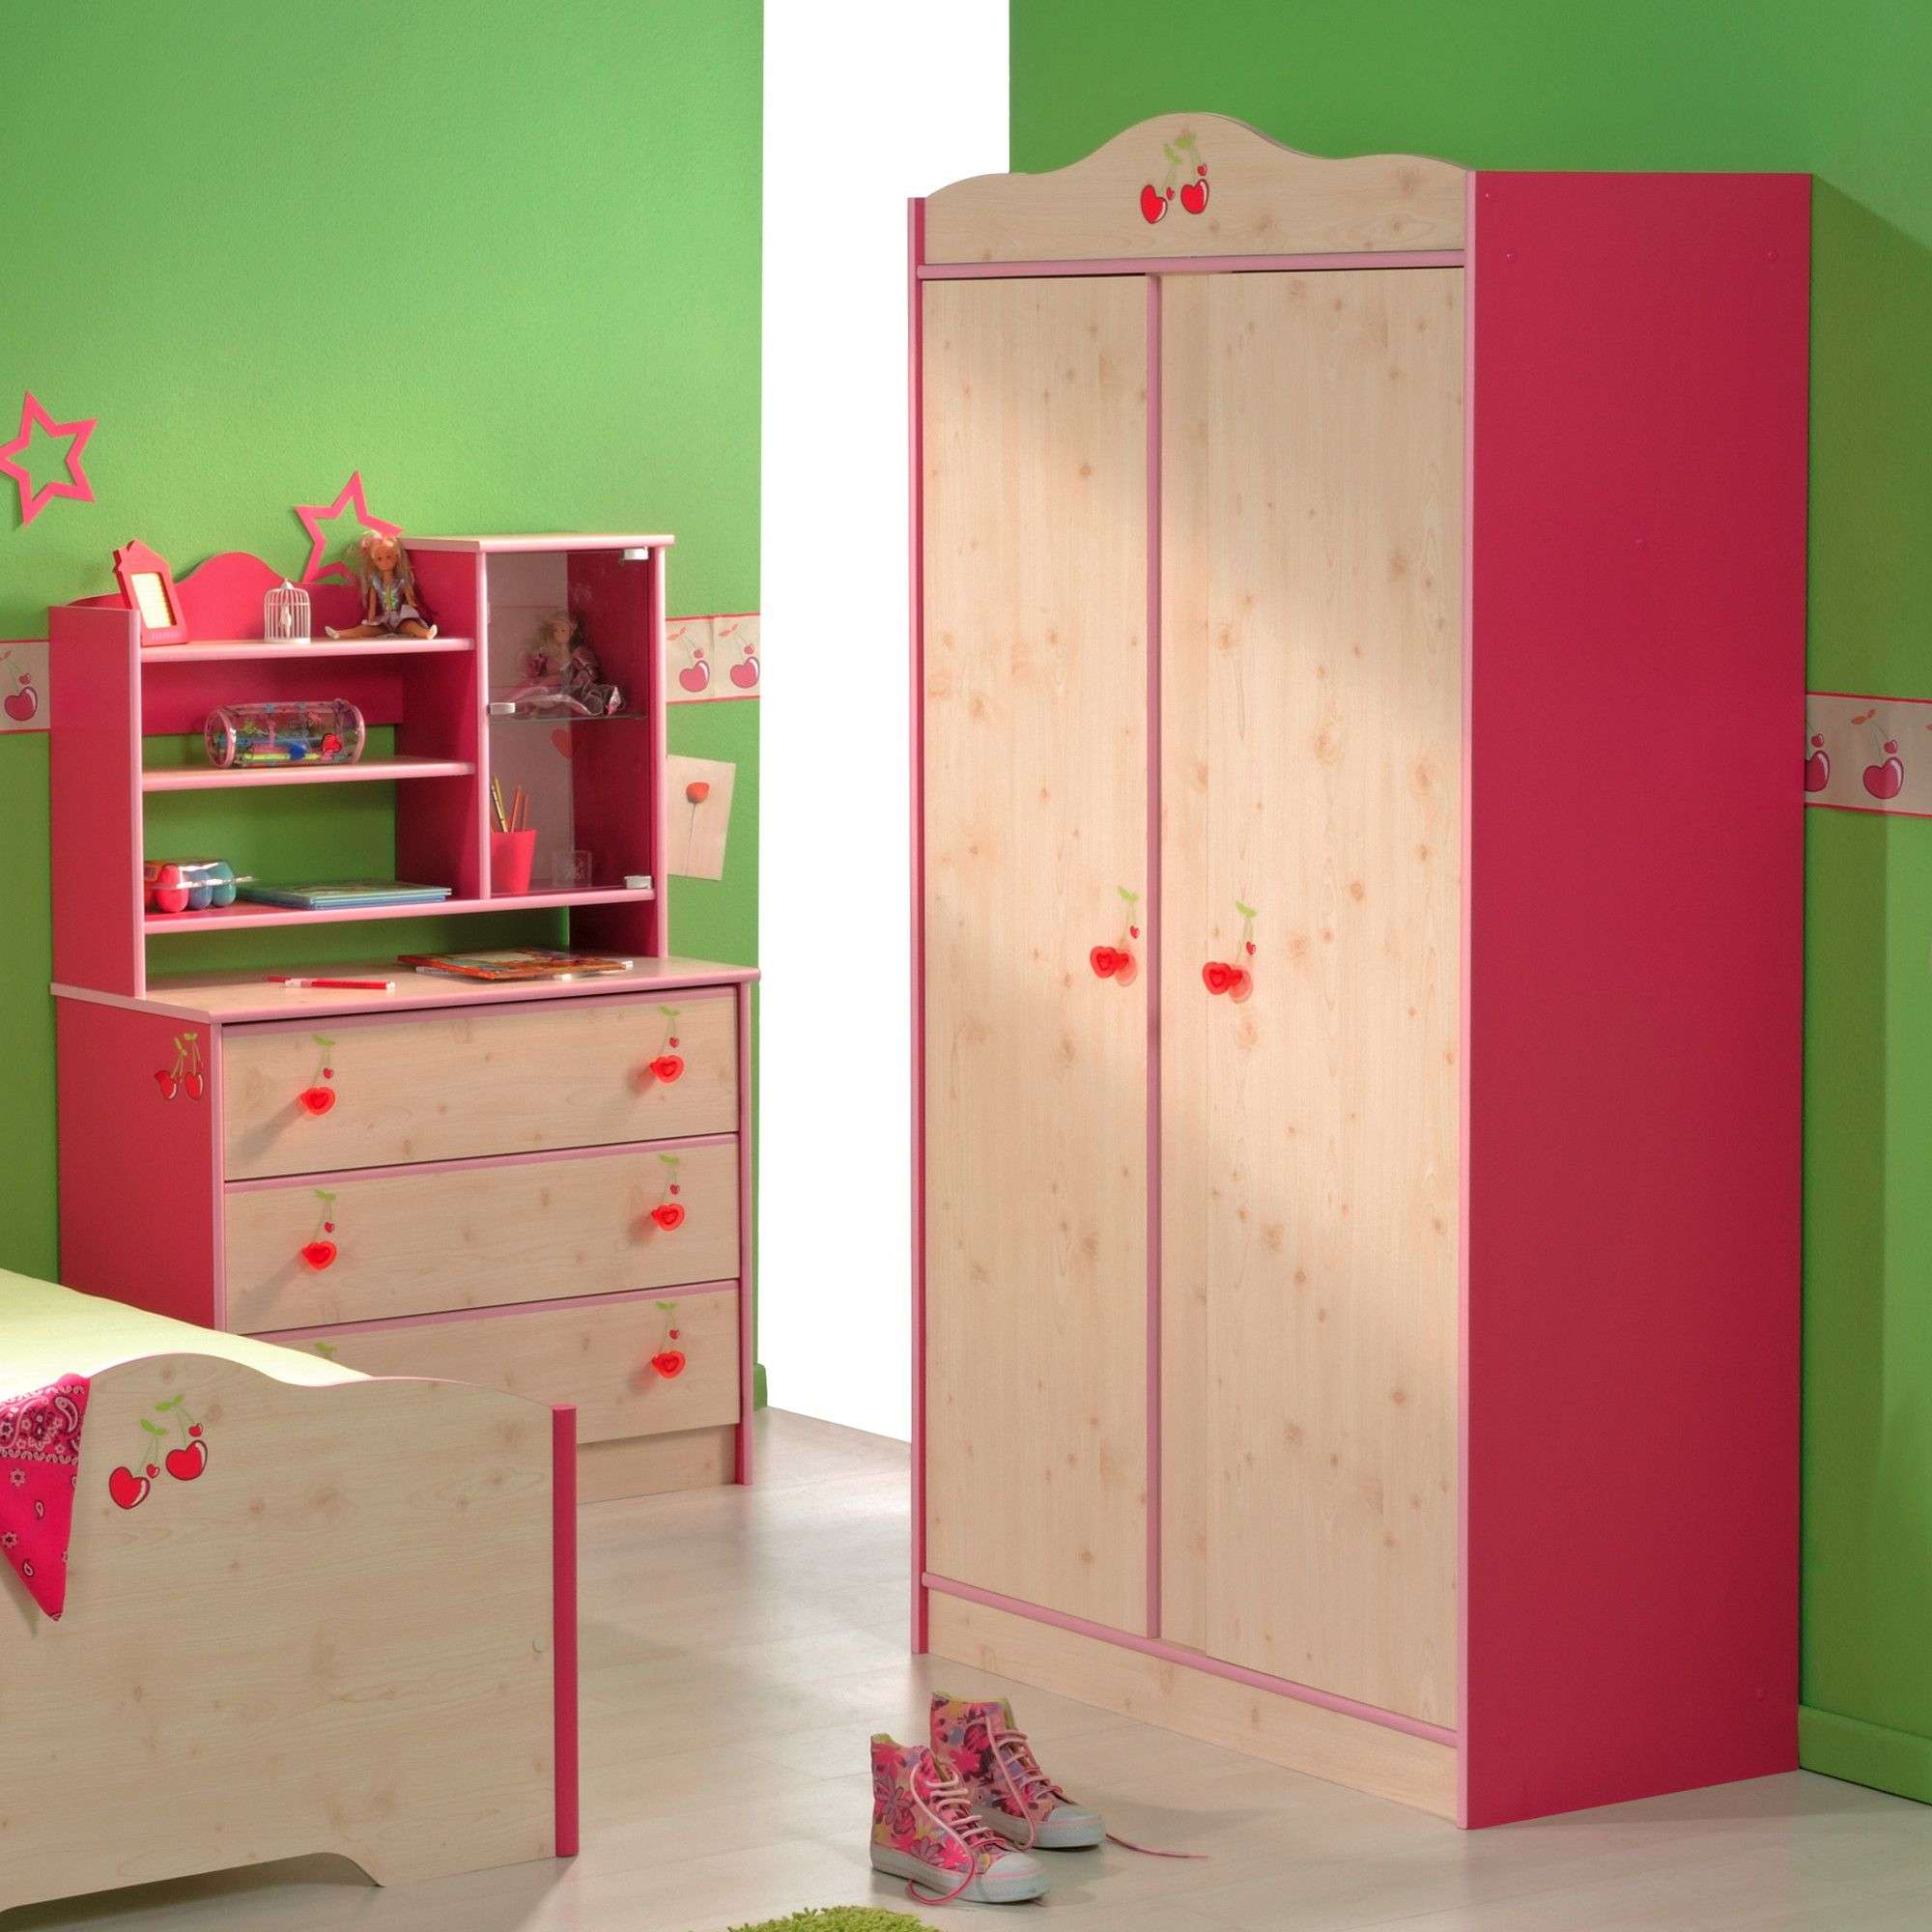 Parisot Miss Griotte Two Door Wardrobe in White Stained Pine / Raspberry at Tesco Direct